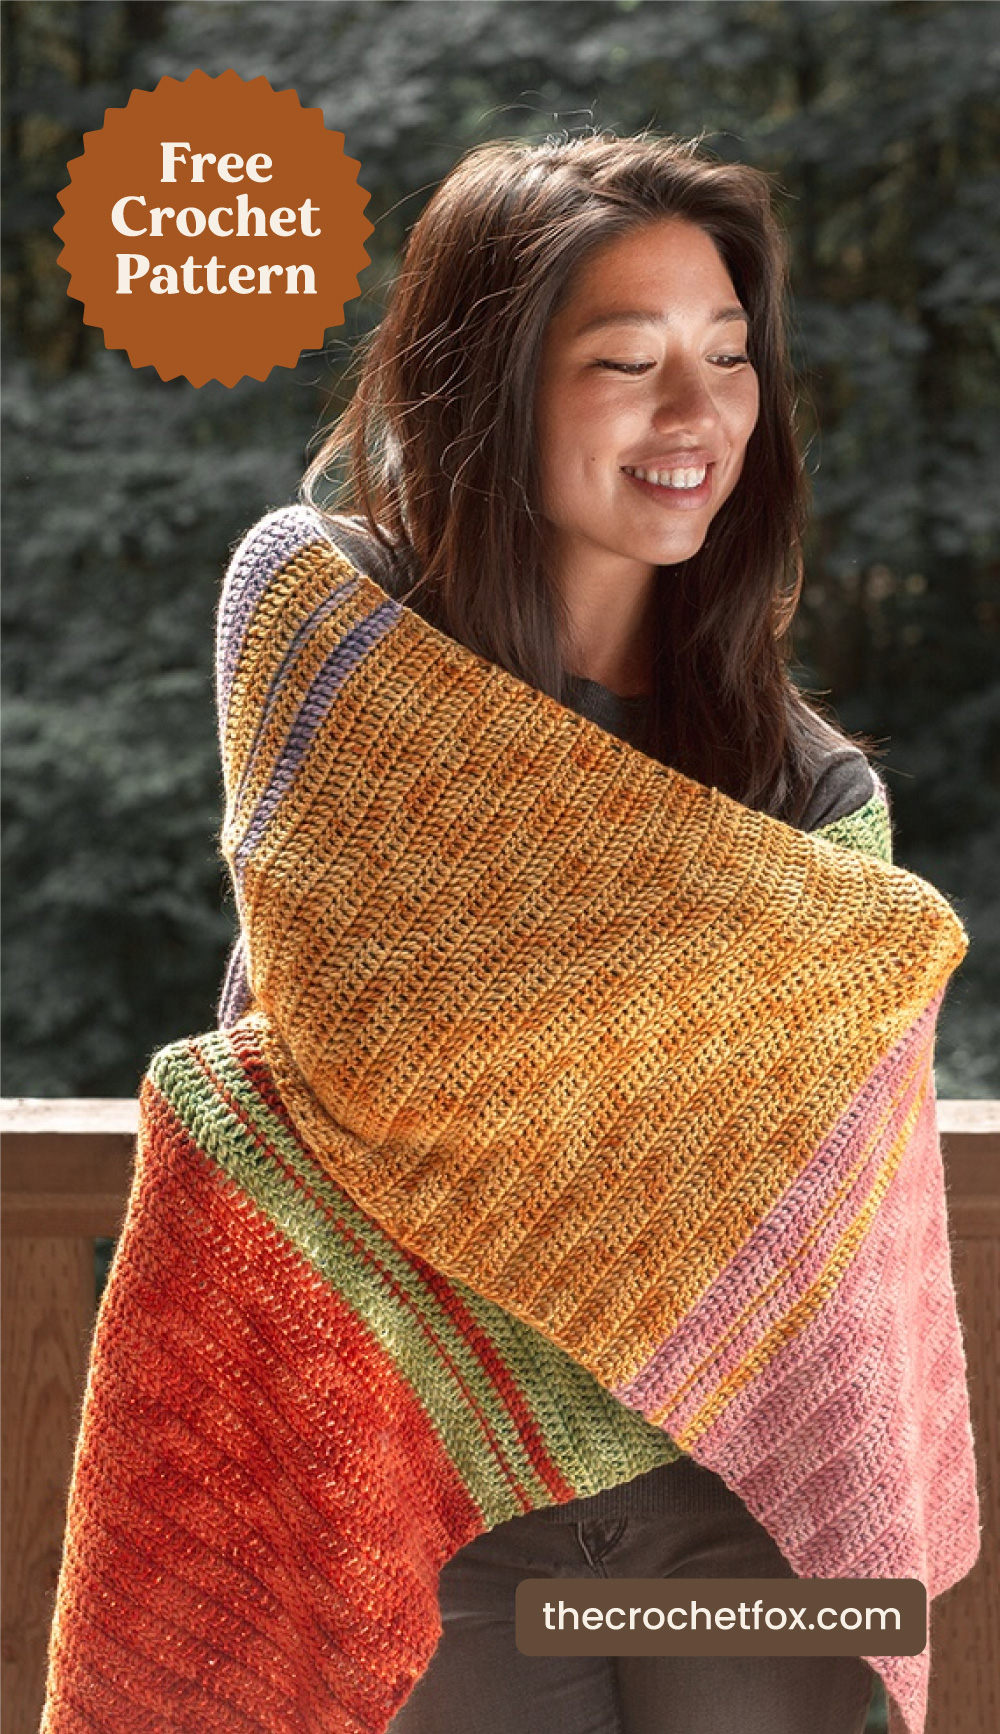 """Text area which says """"Free Crochet Pattern"""" next to woman  wrapping herself in a rectangular crochet shawl  with vibrant colors followed by another text area which says """"thecrochetfox.com"""""""